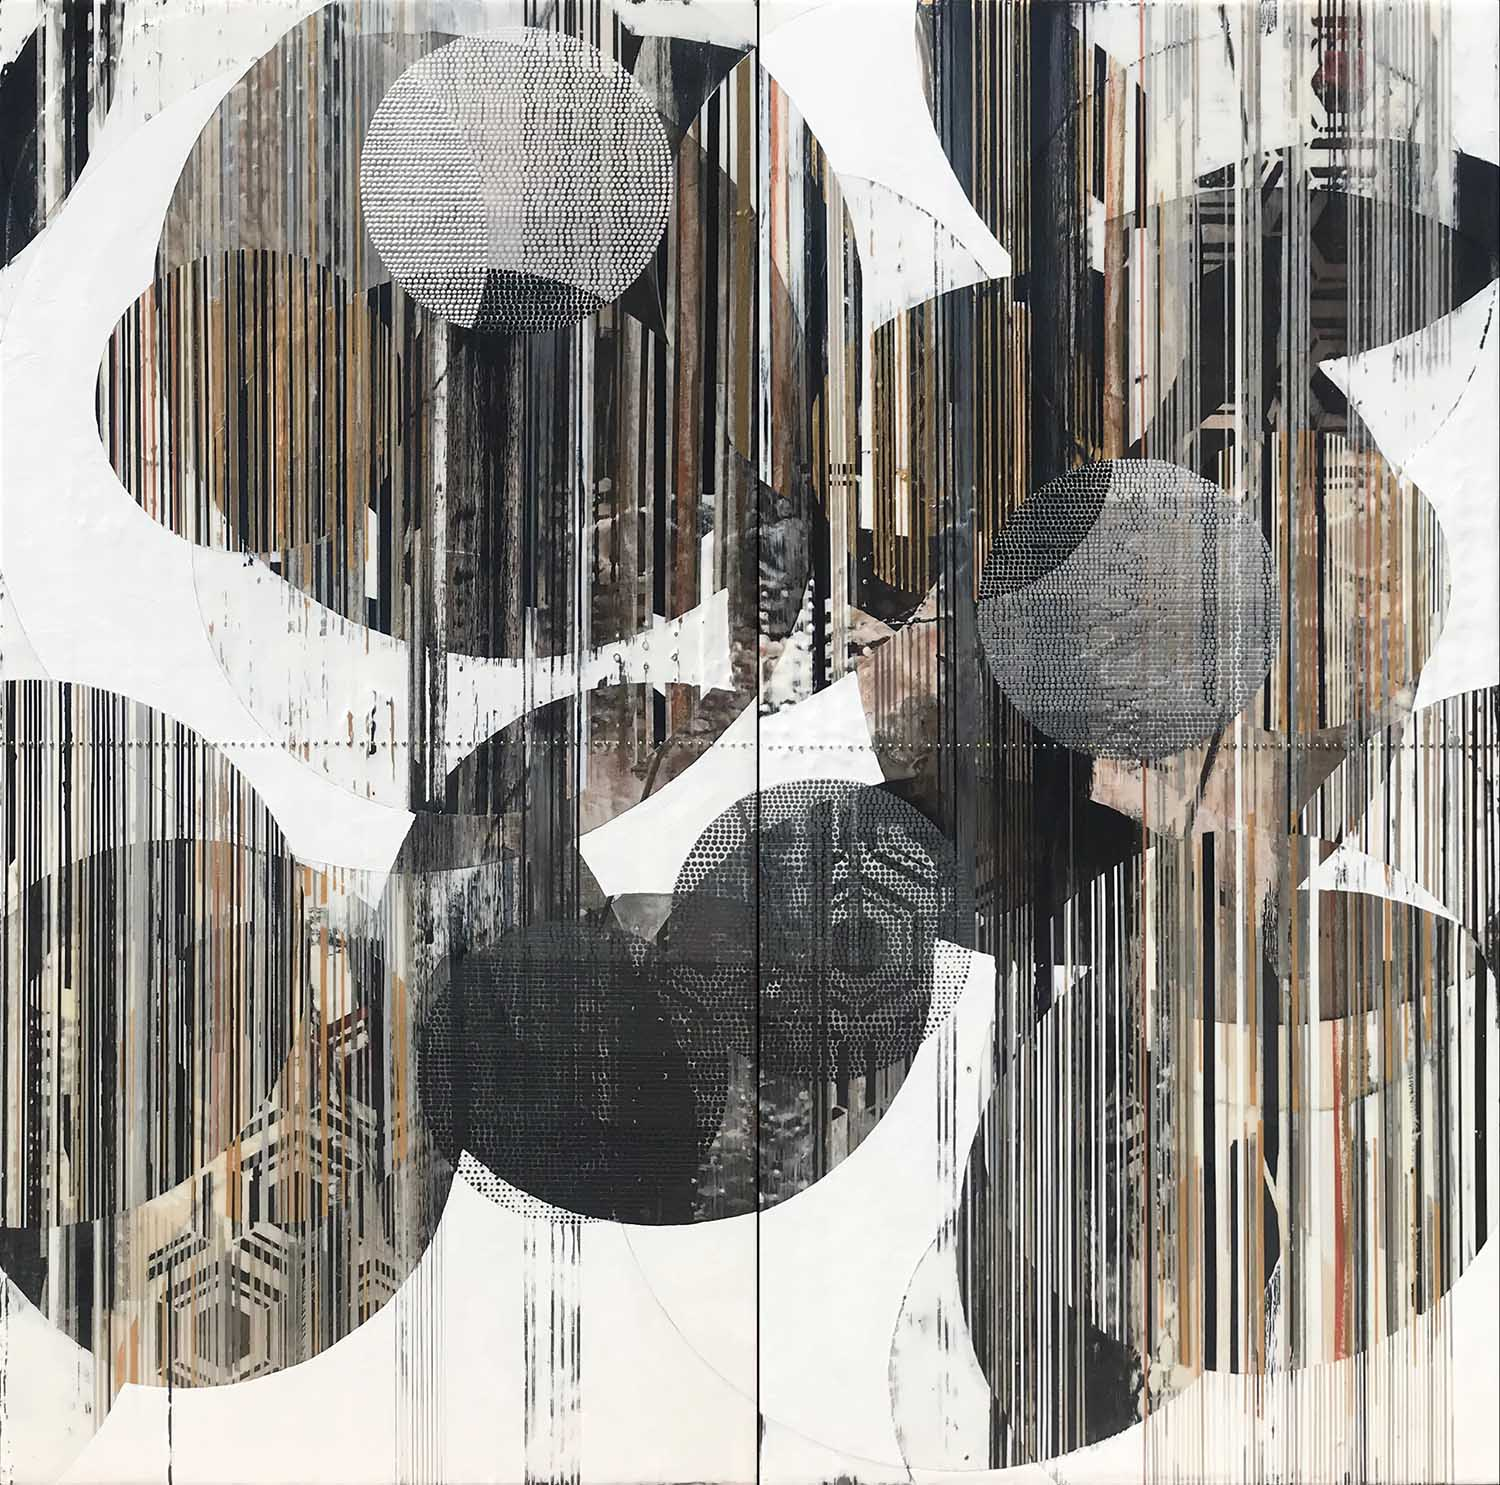 """Softly soaring through my atmosphere / Lantern Series 60""""h x 60""""w x 2""""d combined / Acrylic, ink, charcoal, graphite, pen, paper, canvas and brass on panel / Unframed / Title from: Death Cab For Cutie"""